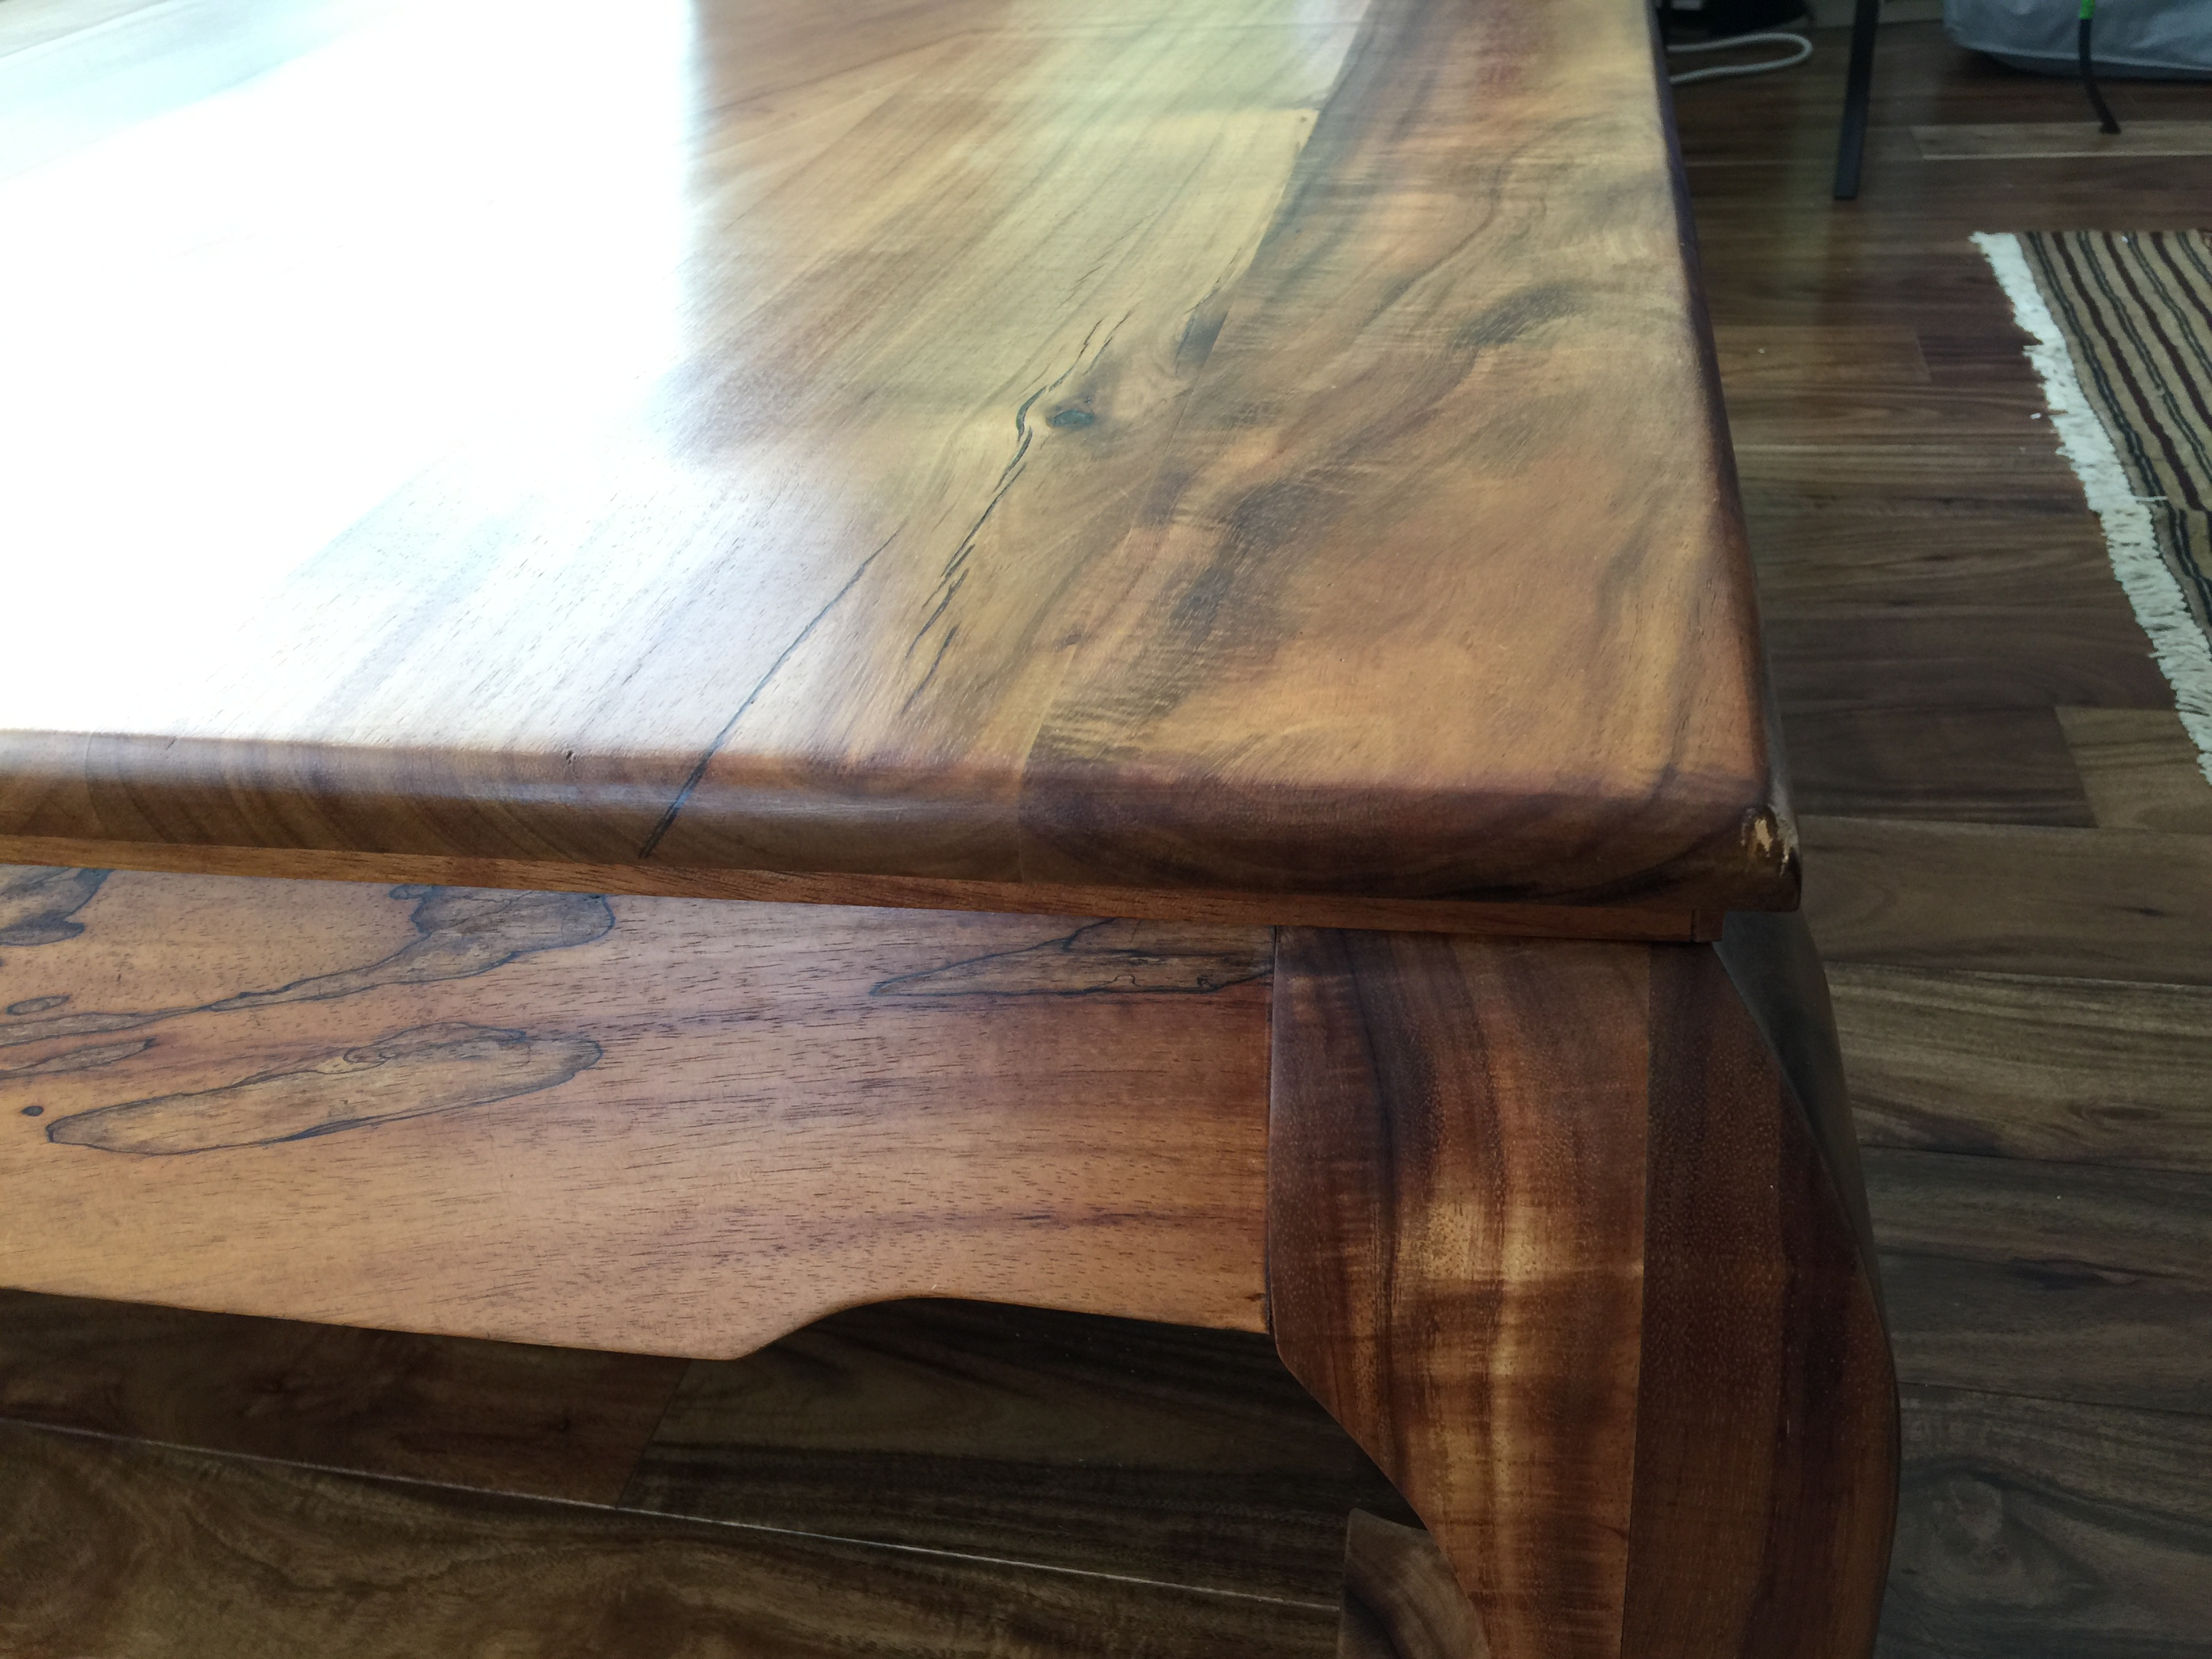 Koa Table Restoration